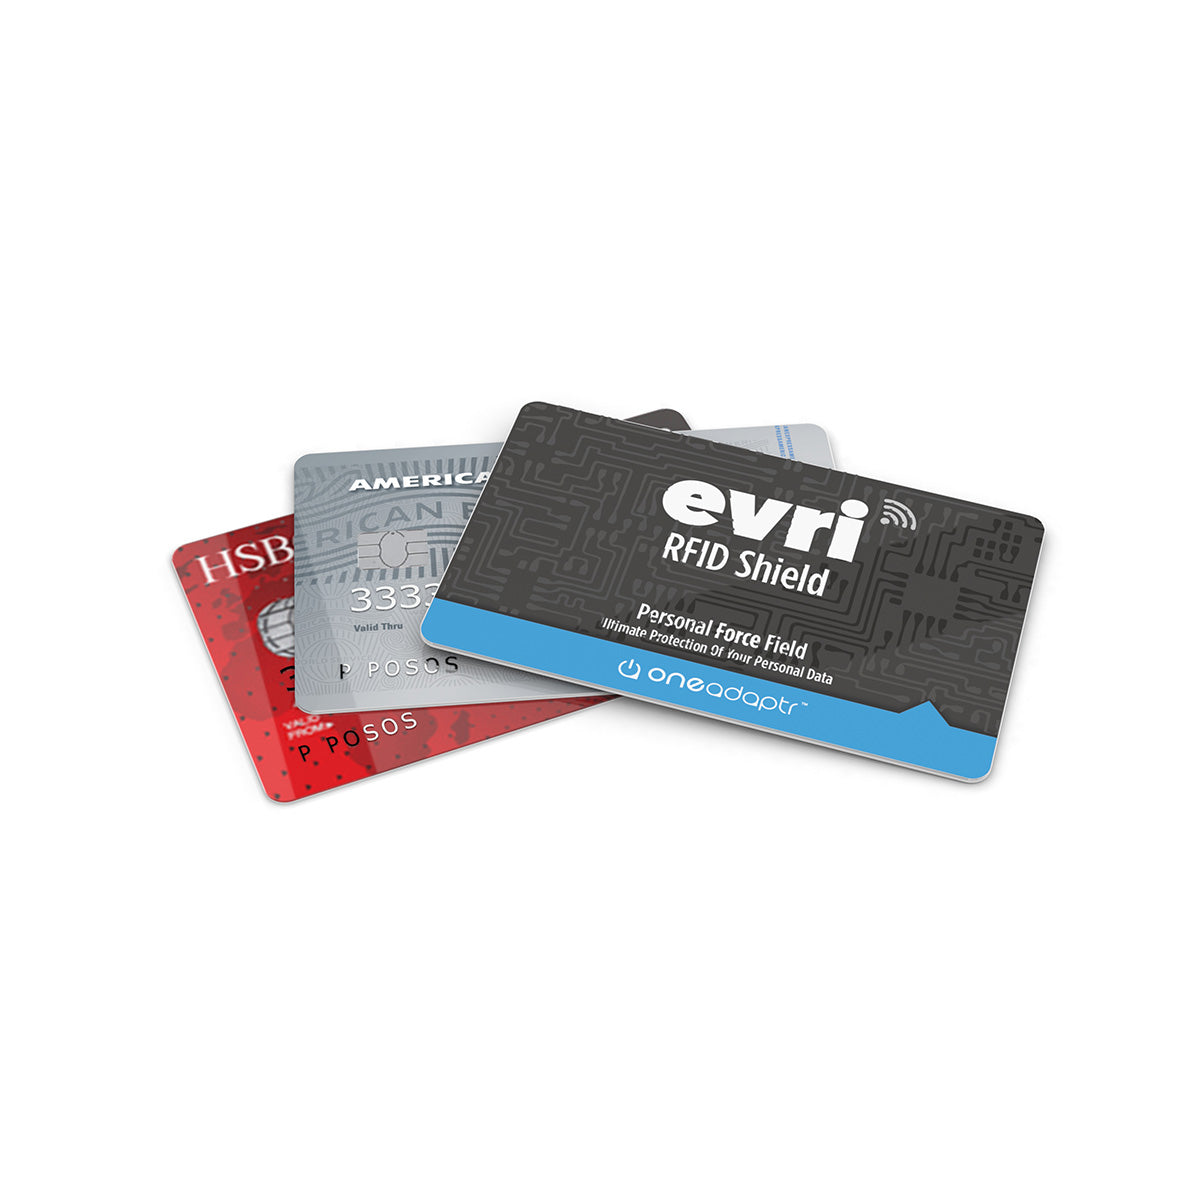 EVRI RFID Shield: Personal Force Field (Pack of 3)